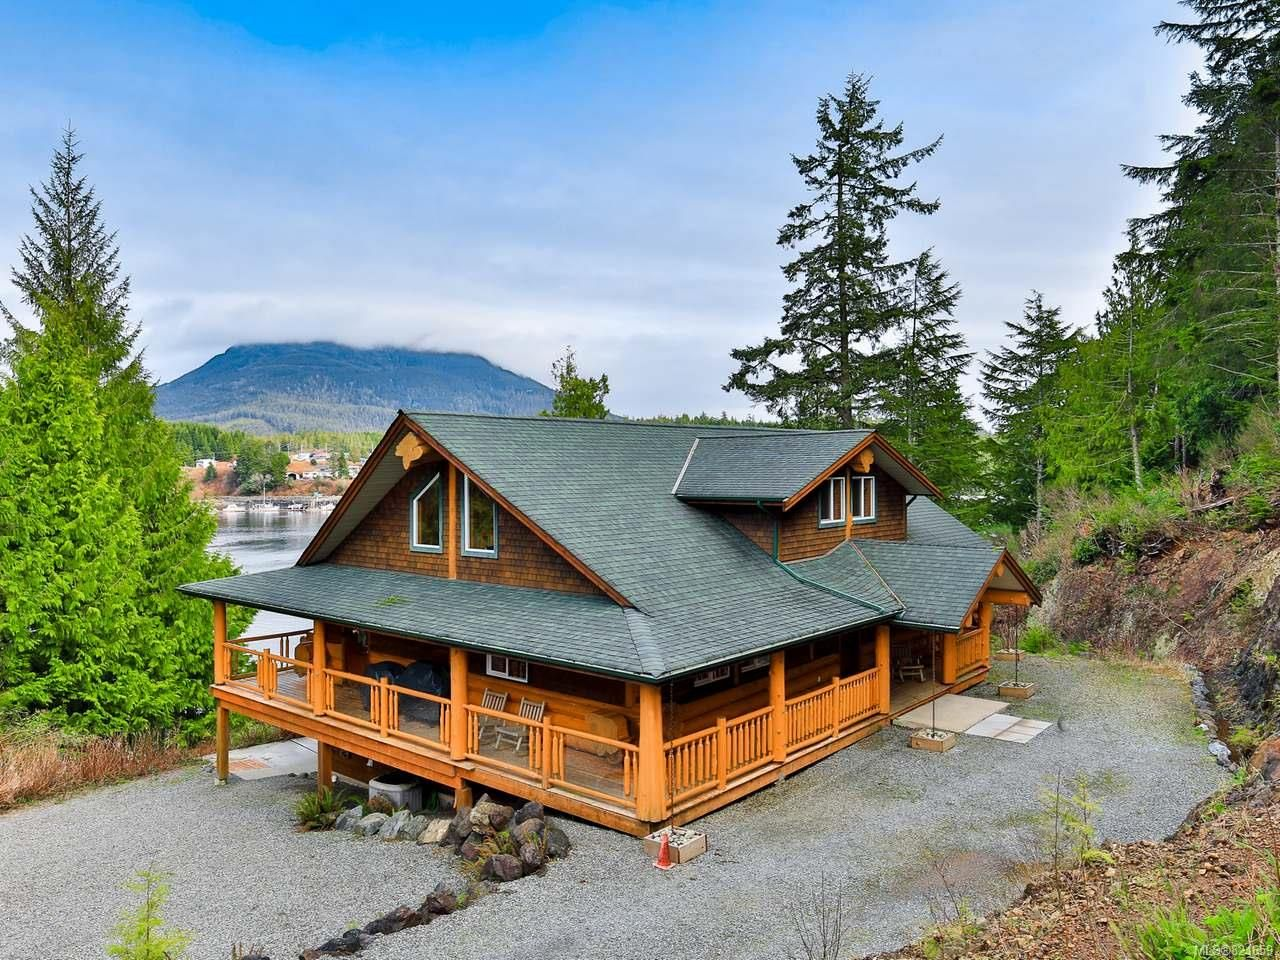 Photo 58: Photos: 1049 Helen Rd in UCLUELET: PA Ucluelet House for sale (Port Alberni)  : MLS®# 821659